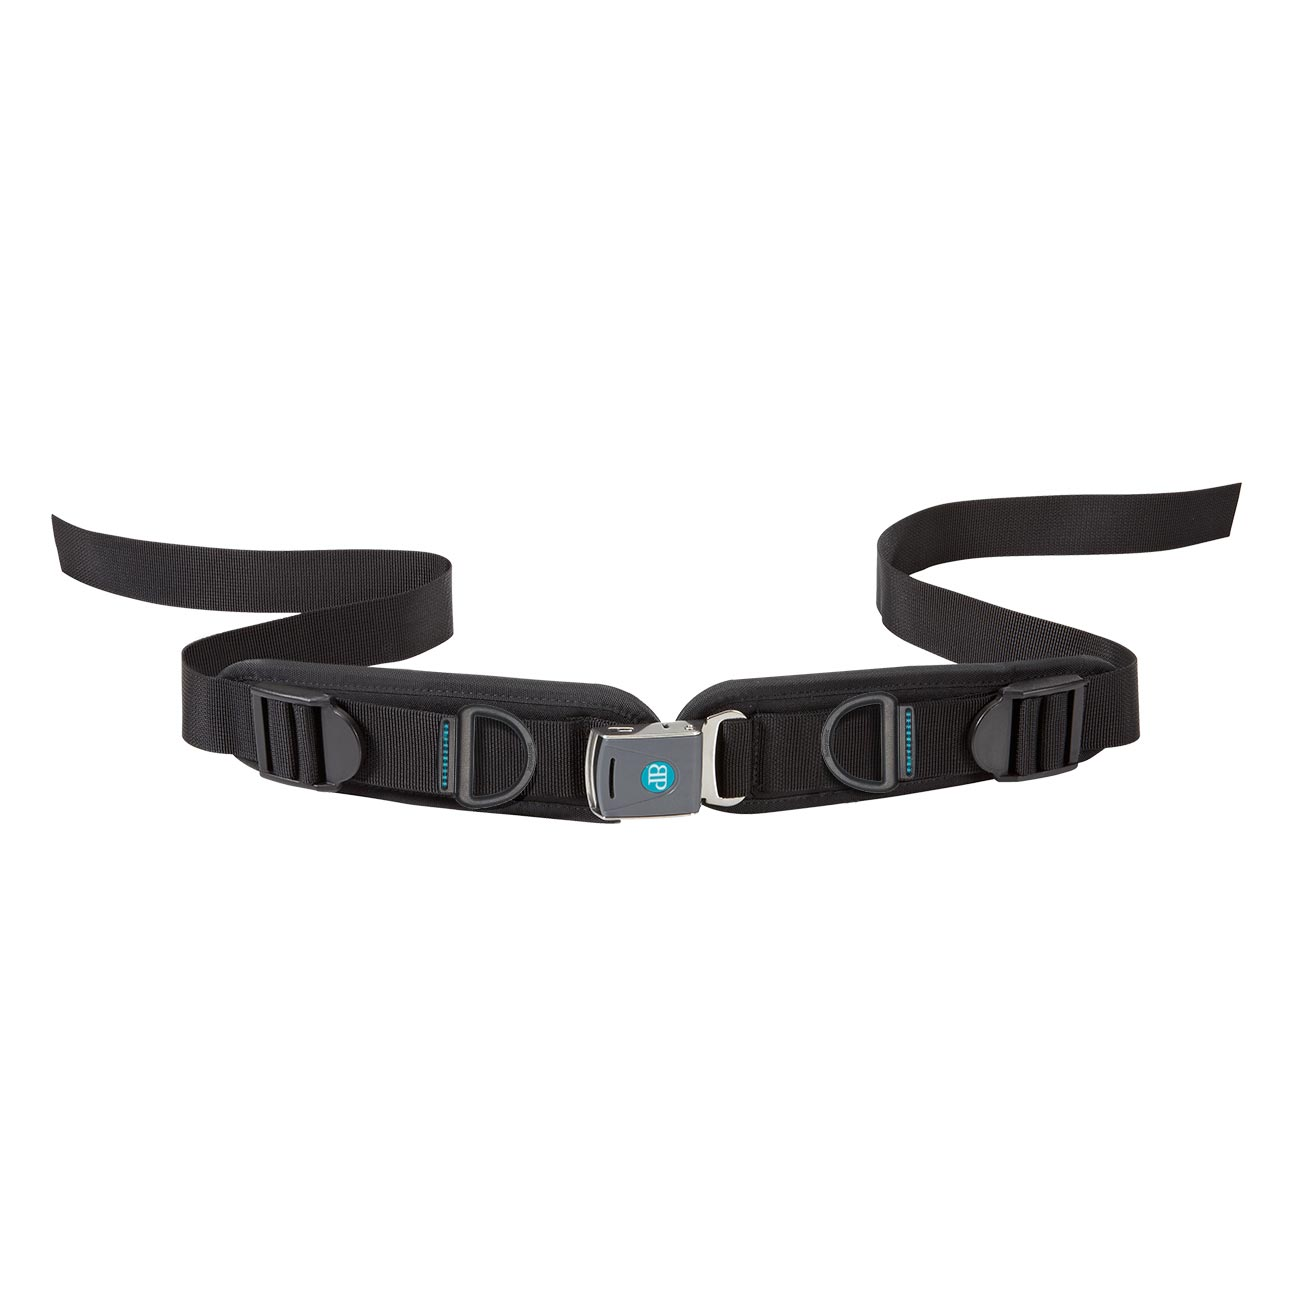 Bodypoint sub-ASIS compatible rear-pull two point padded hip belt with rehab latch buckle - medium